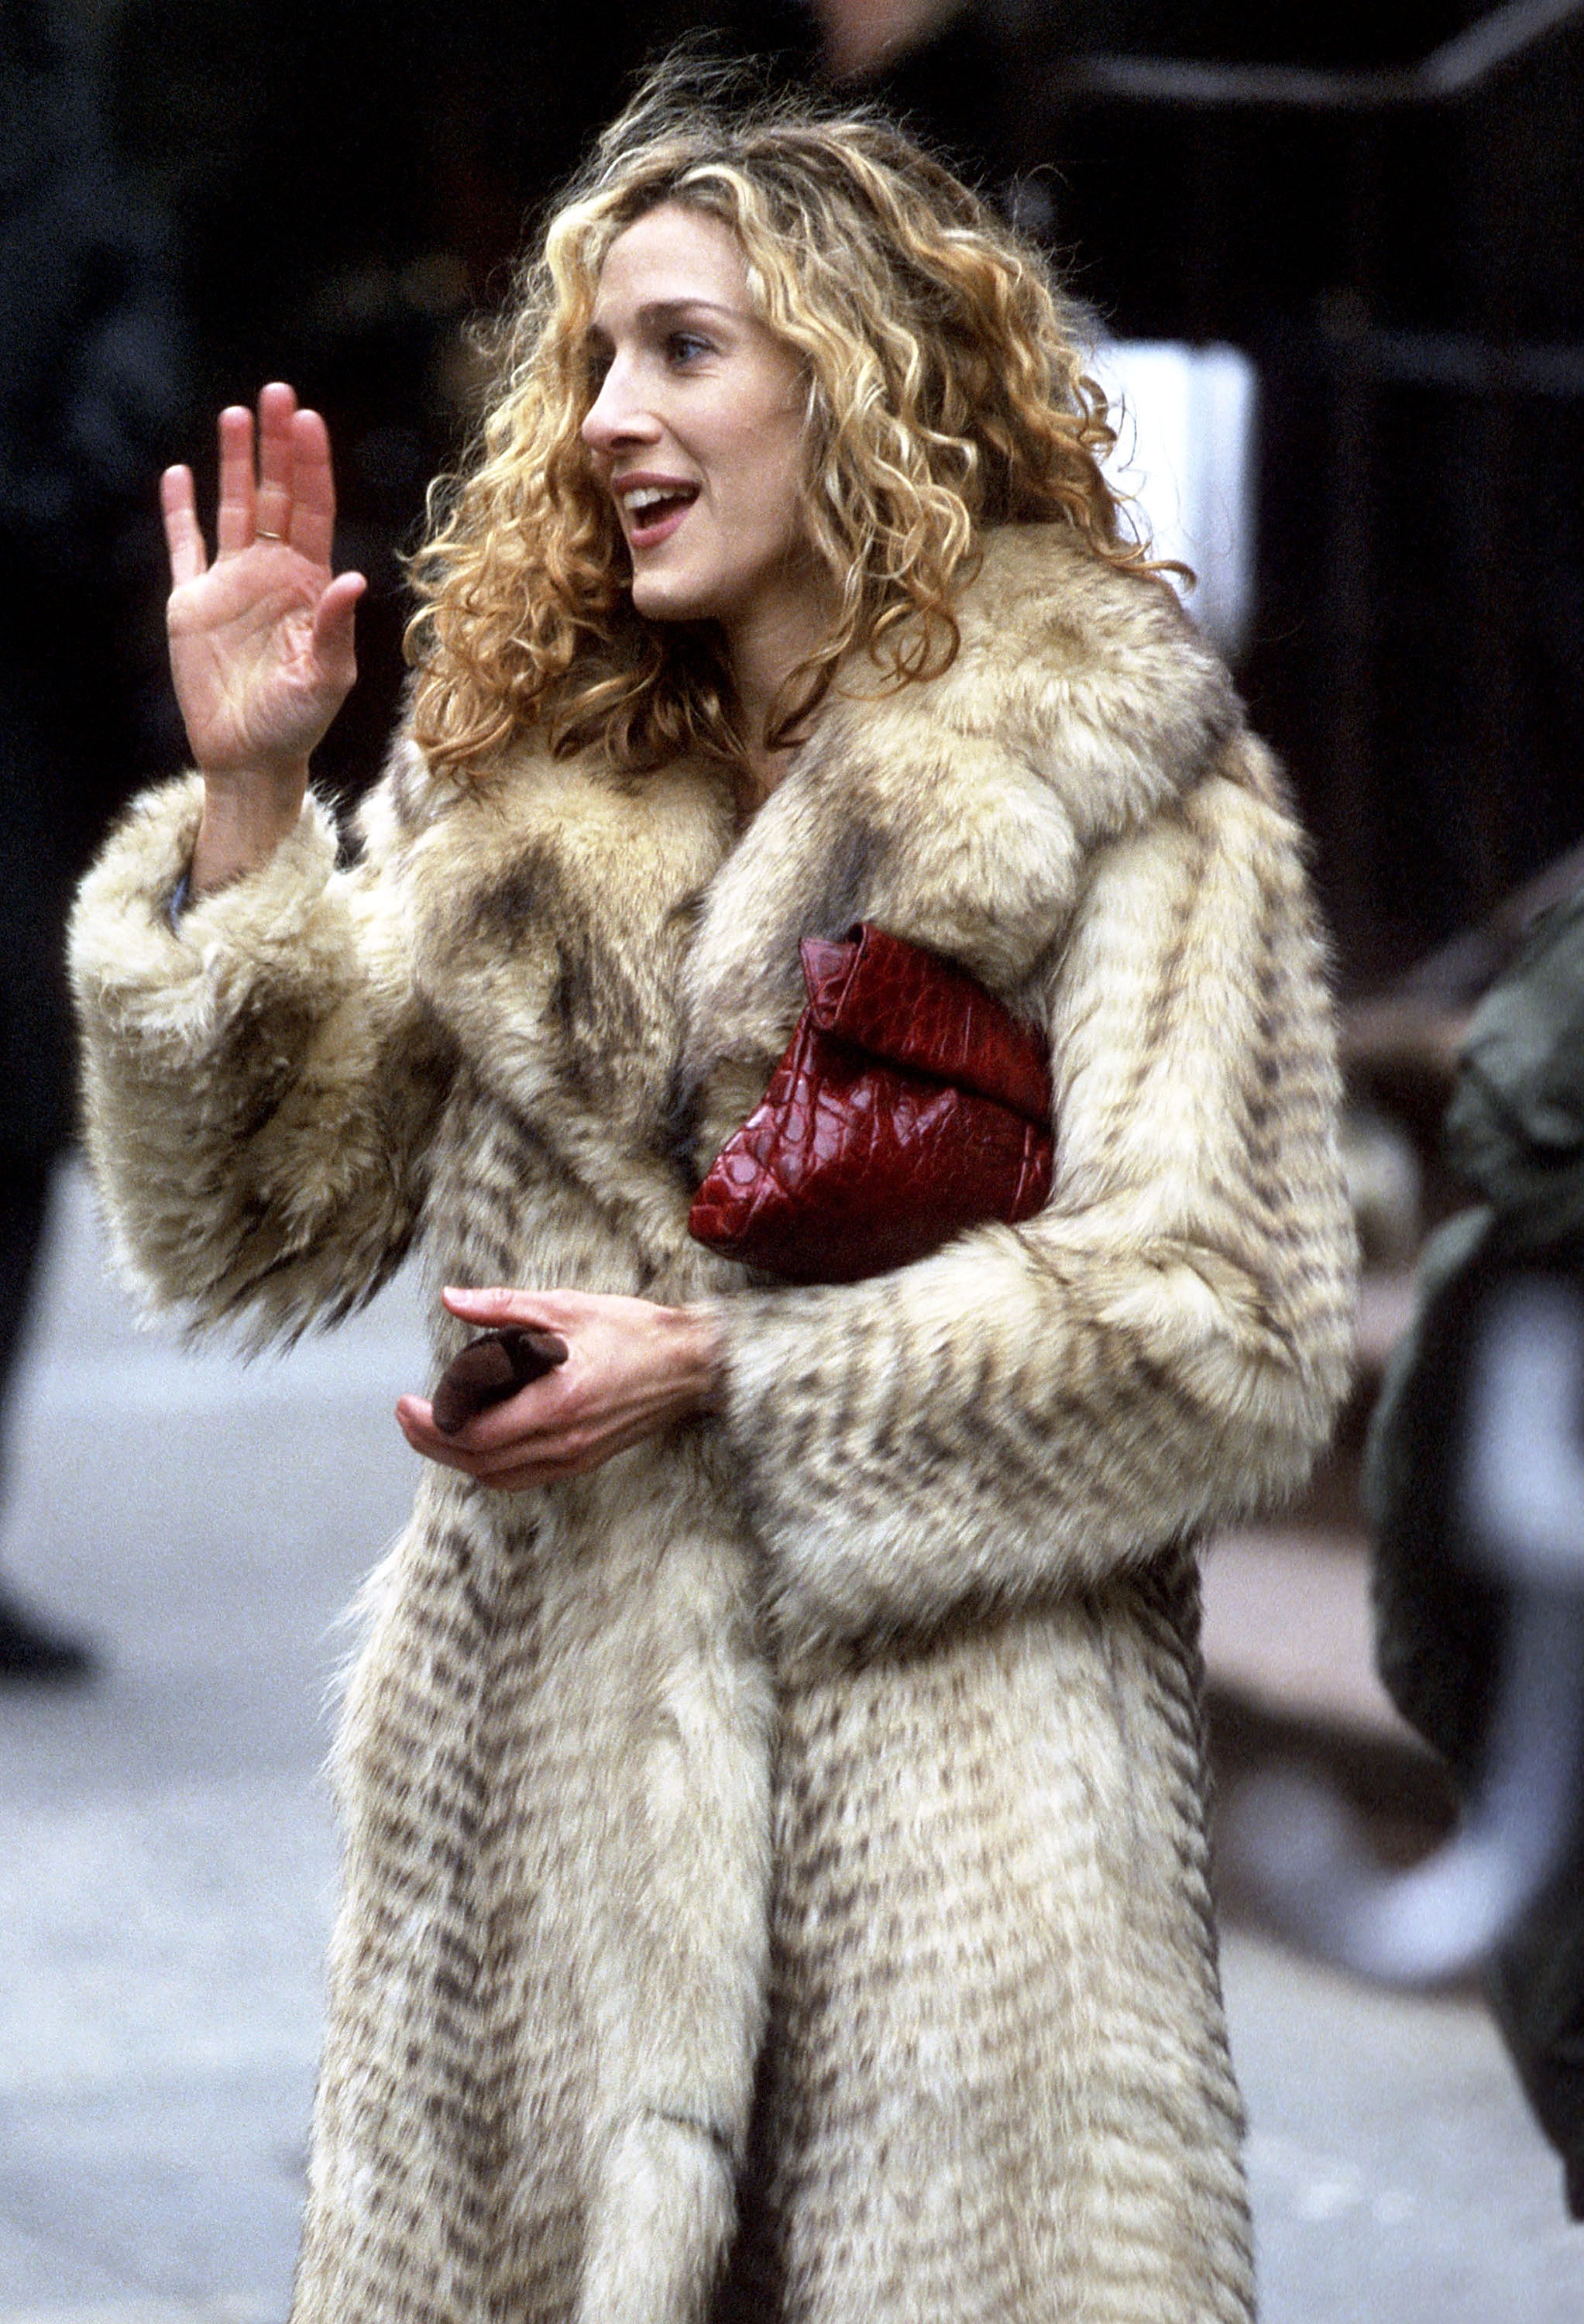 SATC Carrie Getty Images